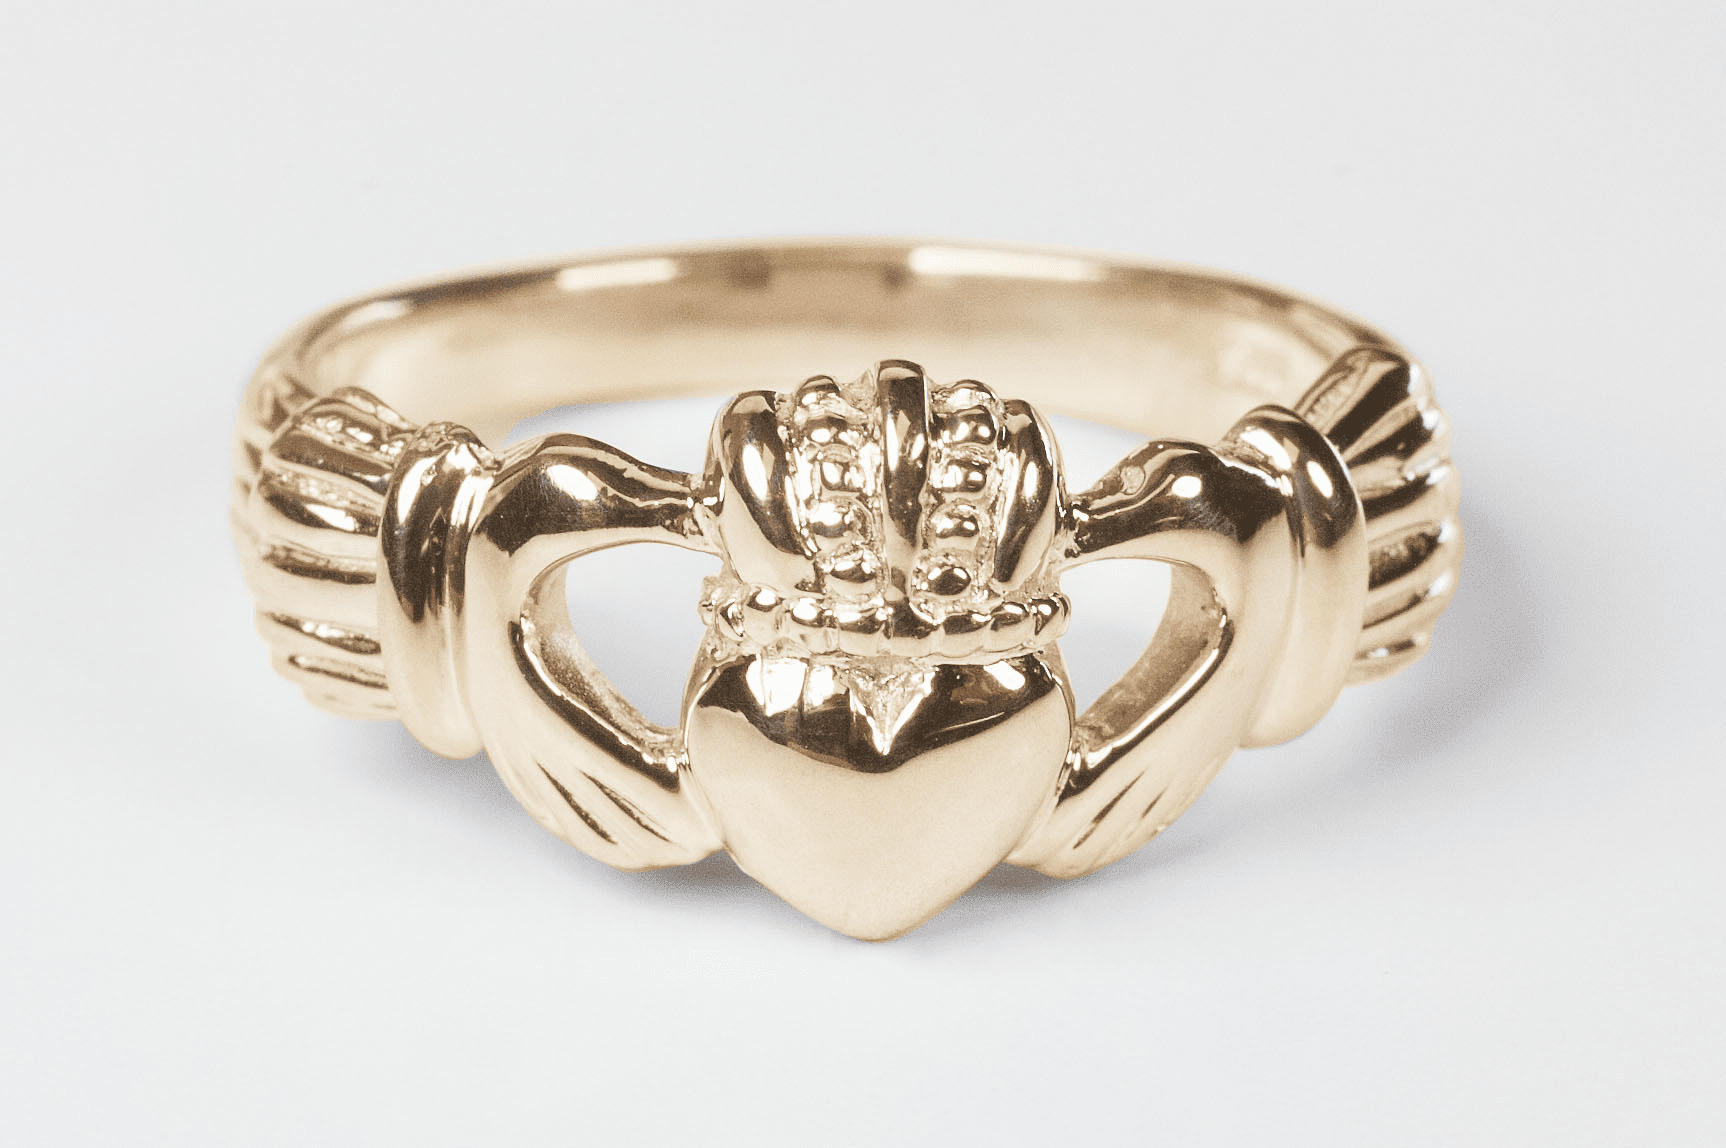 Bliss Men's and Women's 14kt Yellow Gold Irish Claddagh Ring